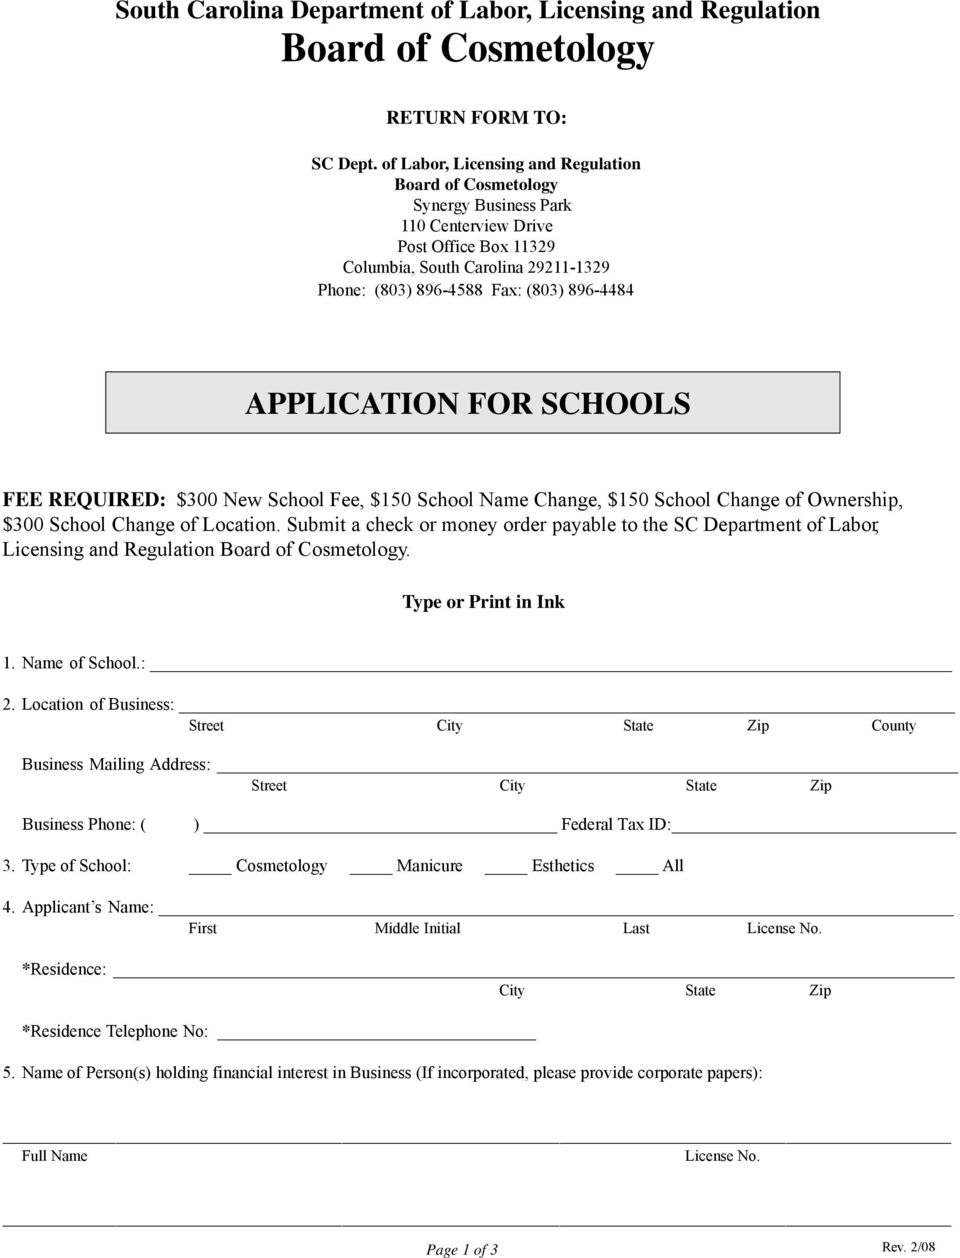 APPLICATION FOR SCHOOLS FEE REQUIRED: $300 New School Fee, $150 School Name Change, $150 School Change of Ownership, $300 School Change of Location.